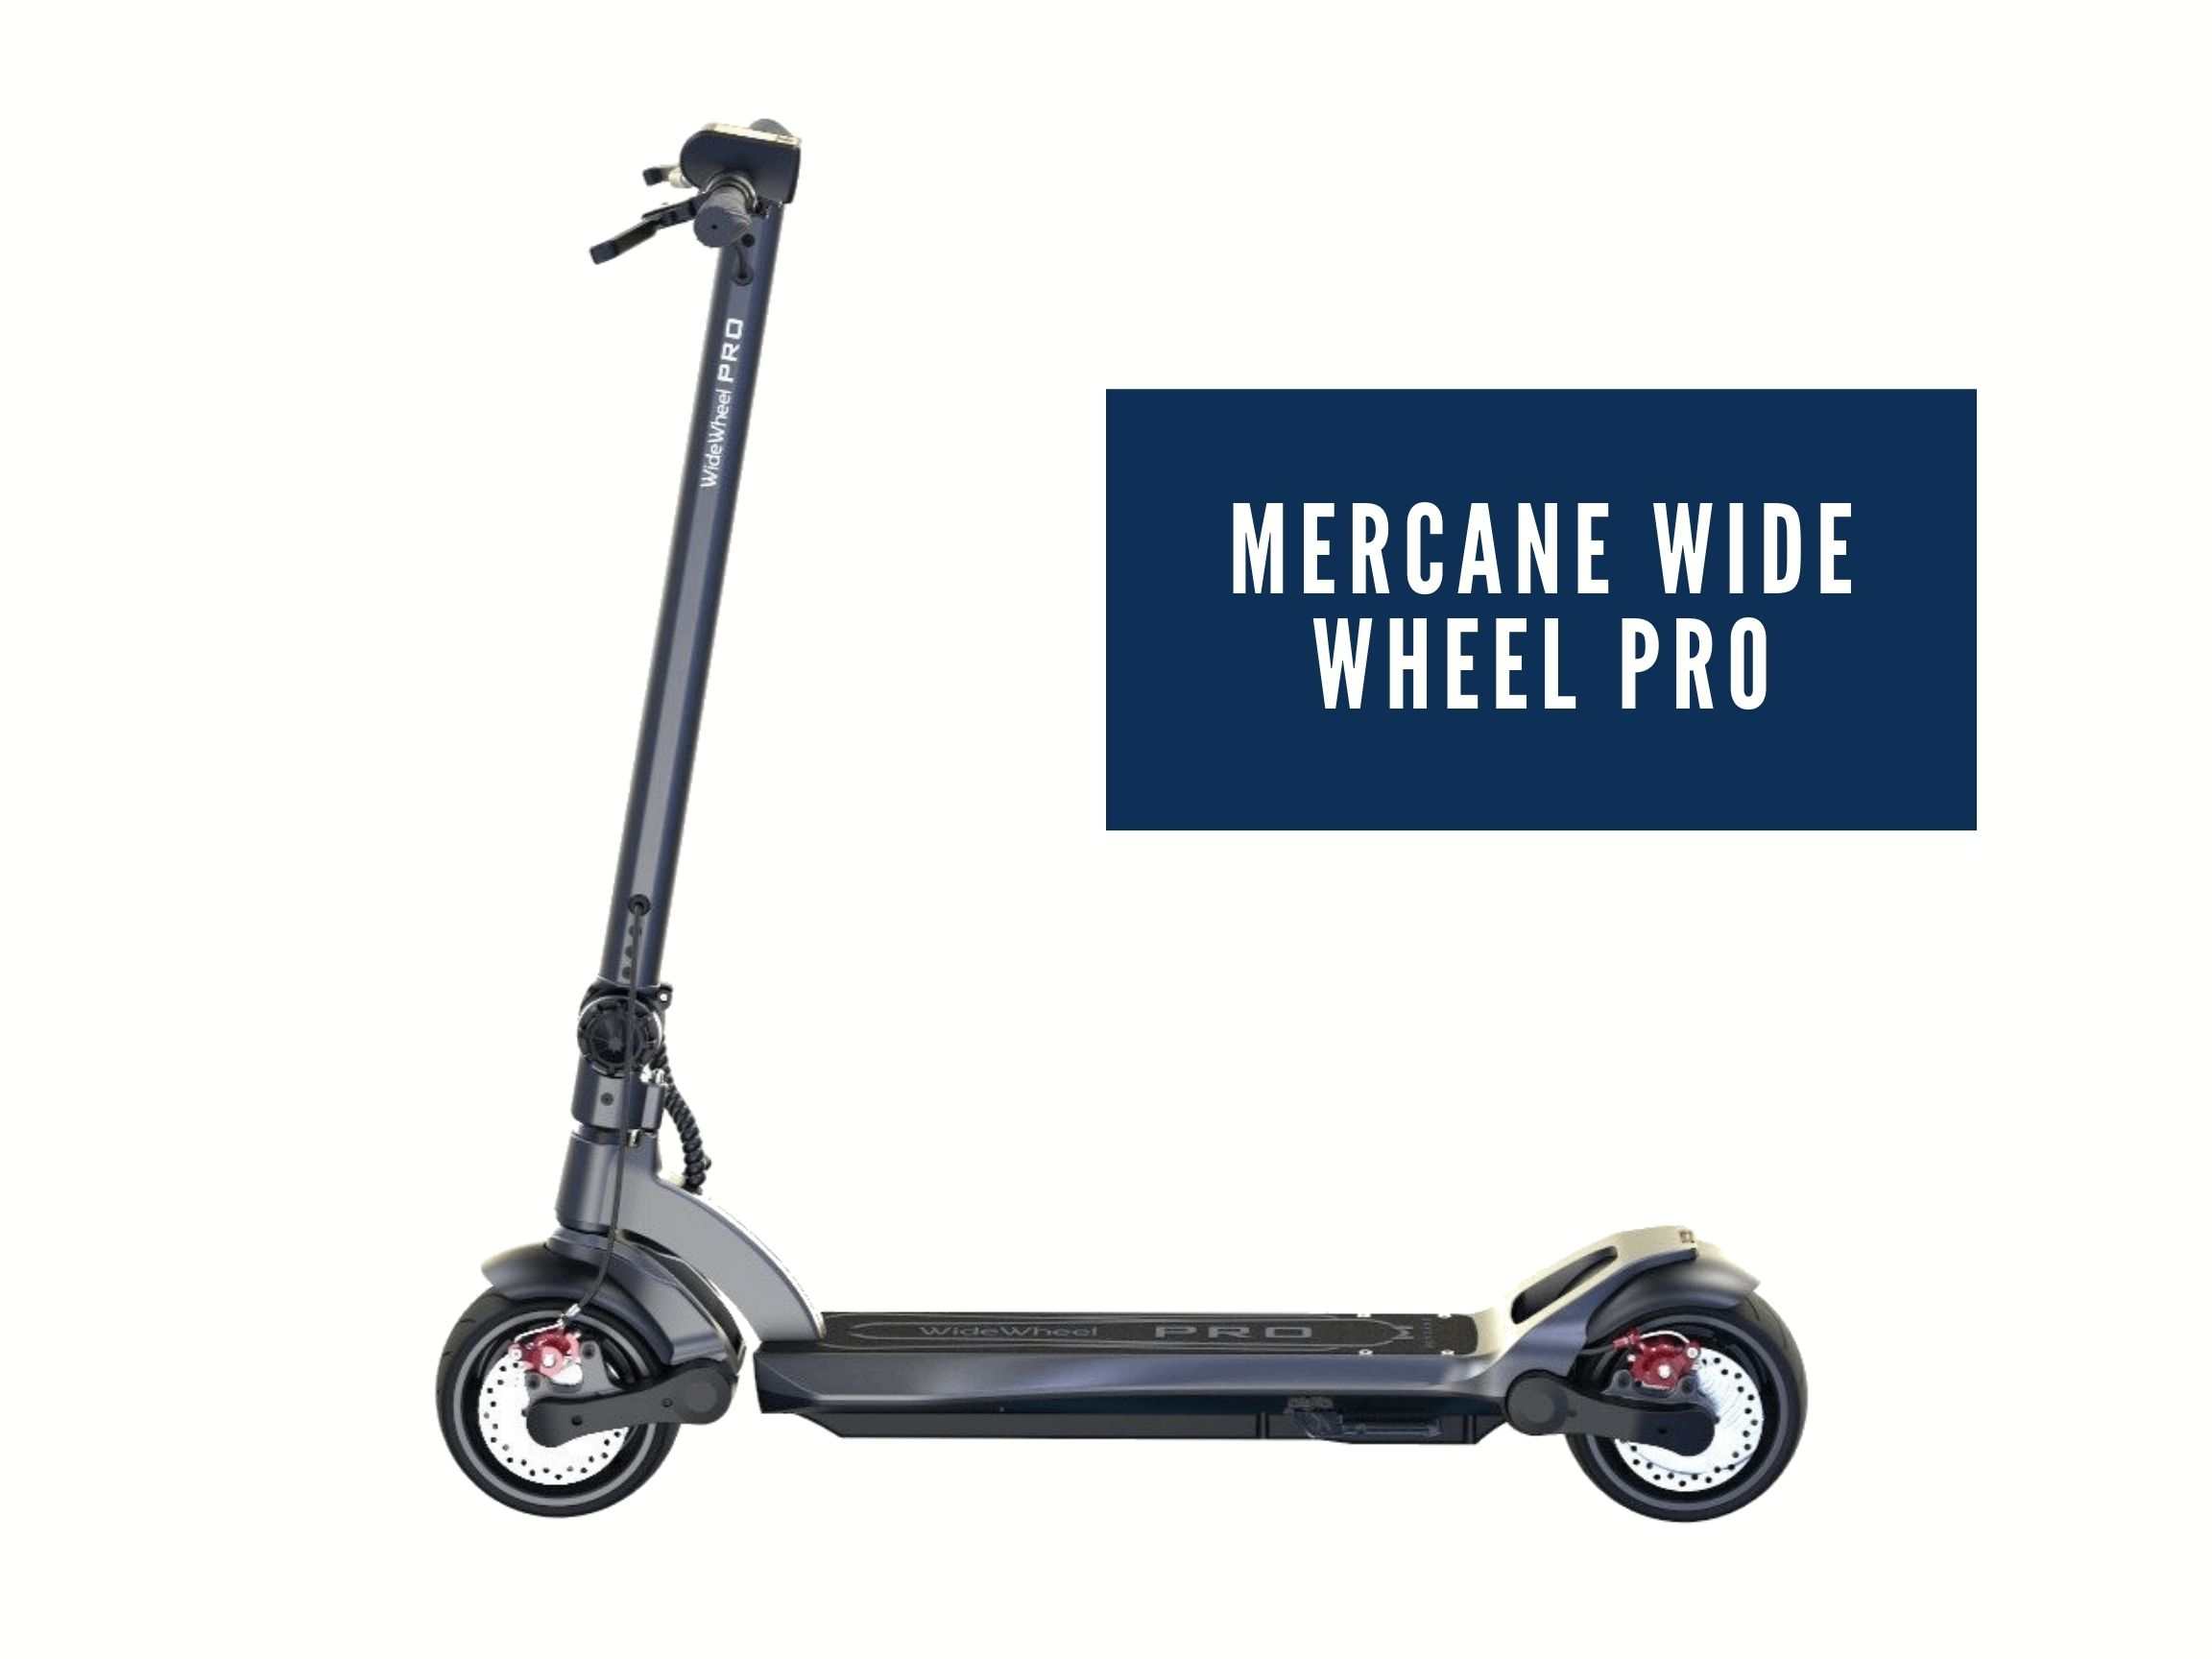 Mercane Wide Wheel Pro with Seat